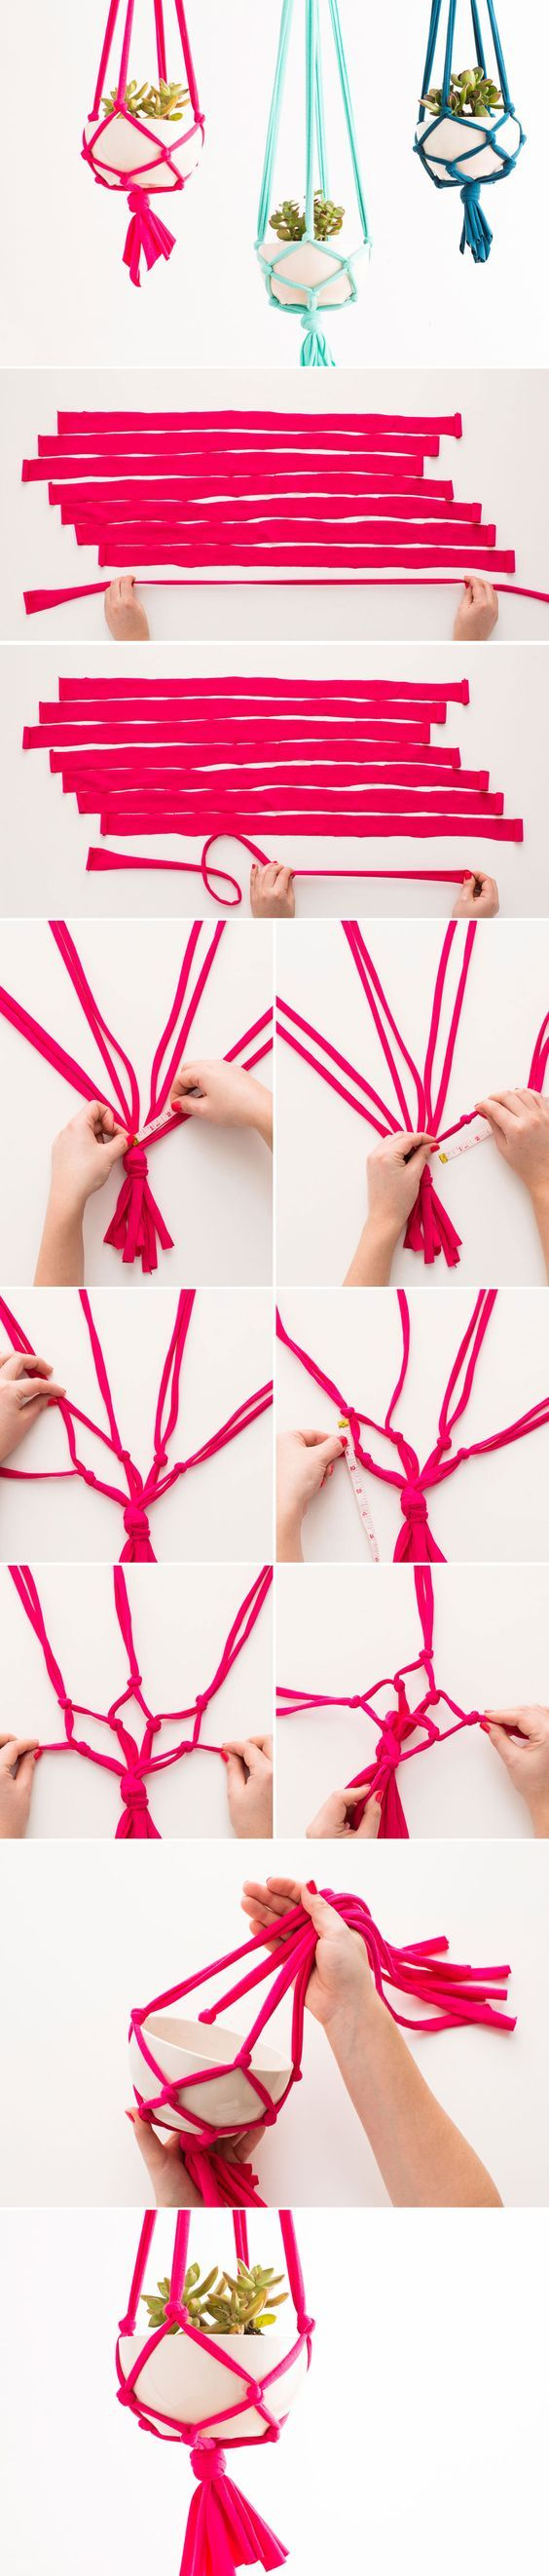 Make These Macrame Hanging Planters in 30 Minutes! | DIY Fun Tips More